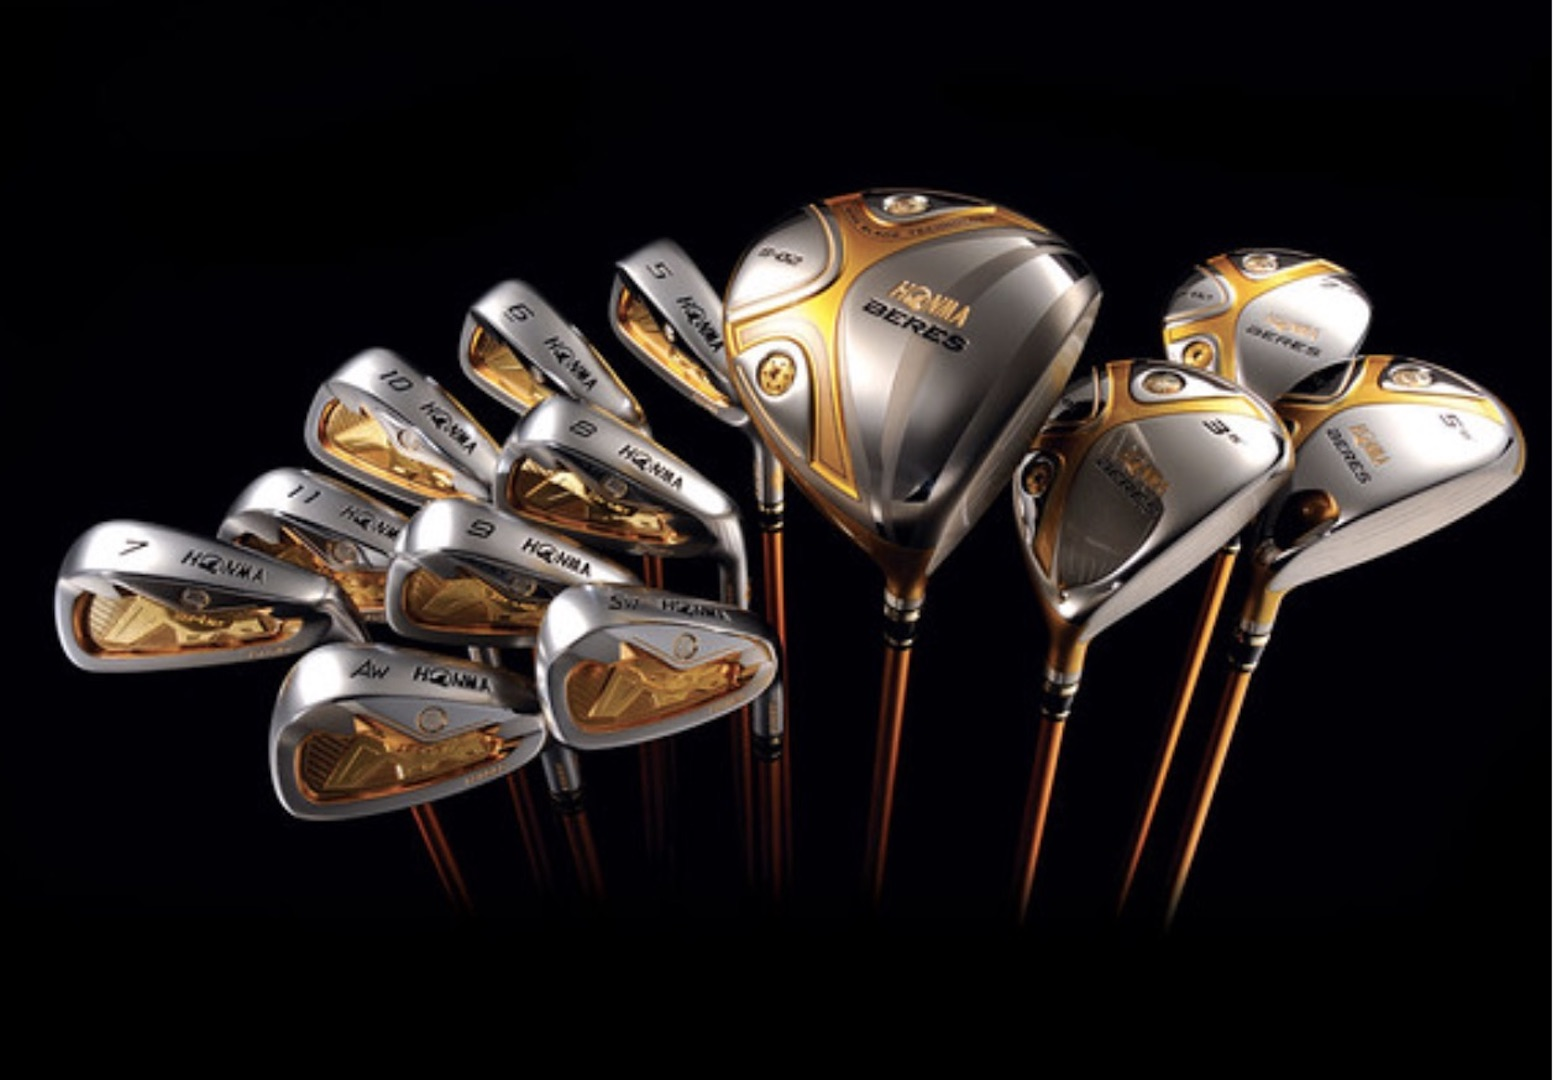 Honma Golf's $75,000 set of clubs